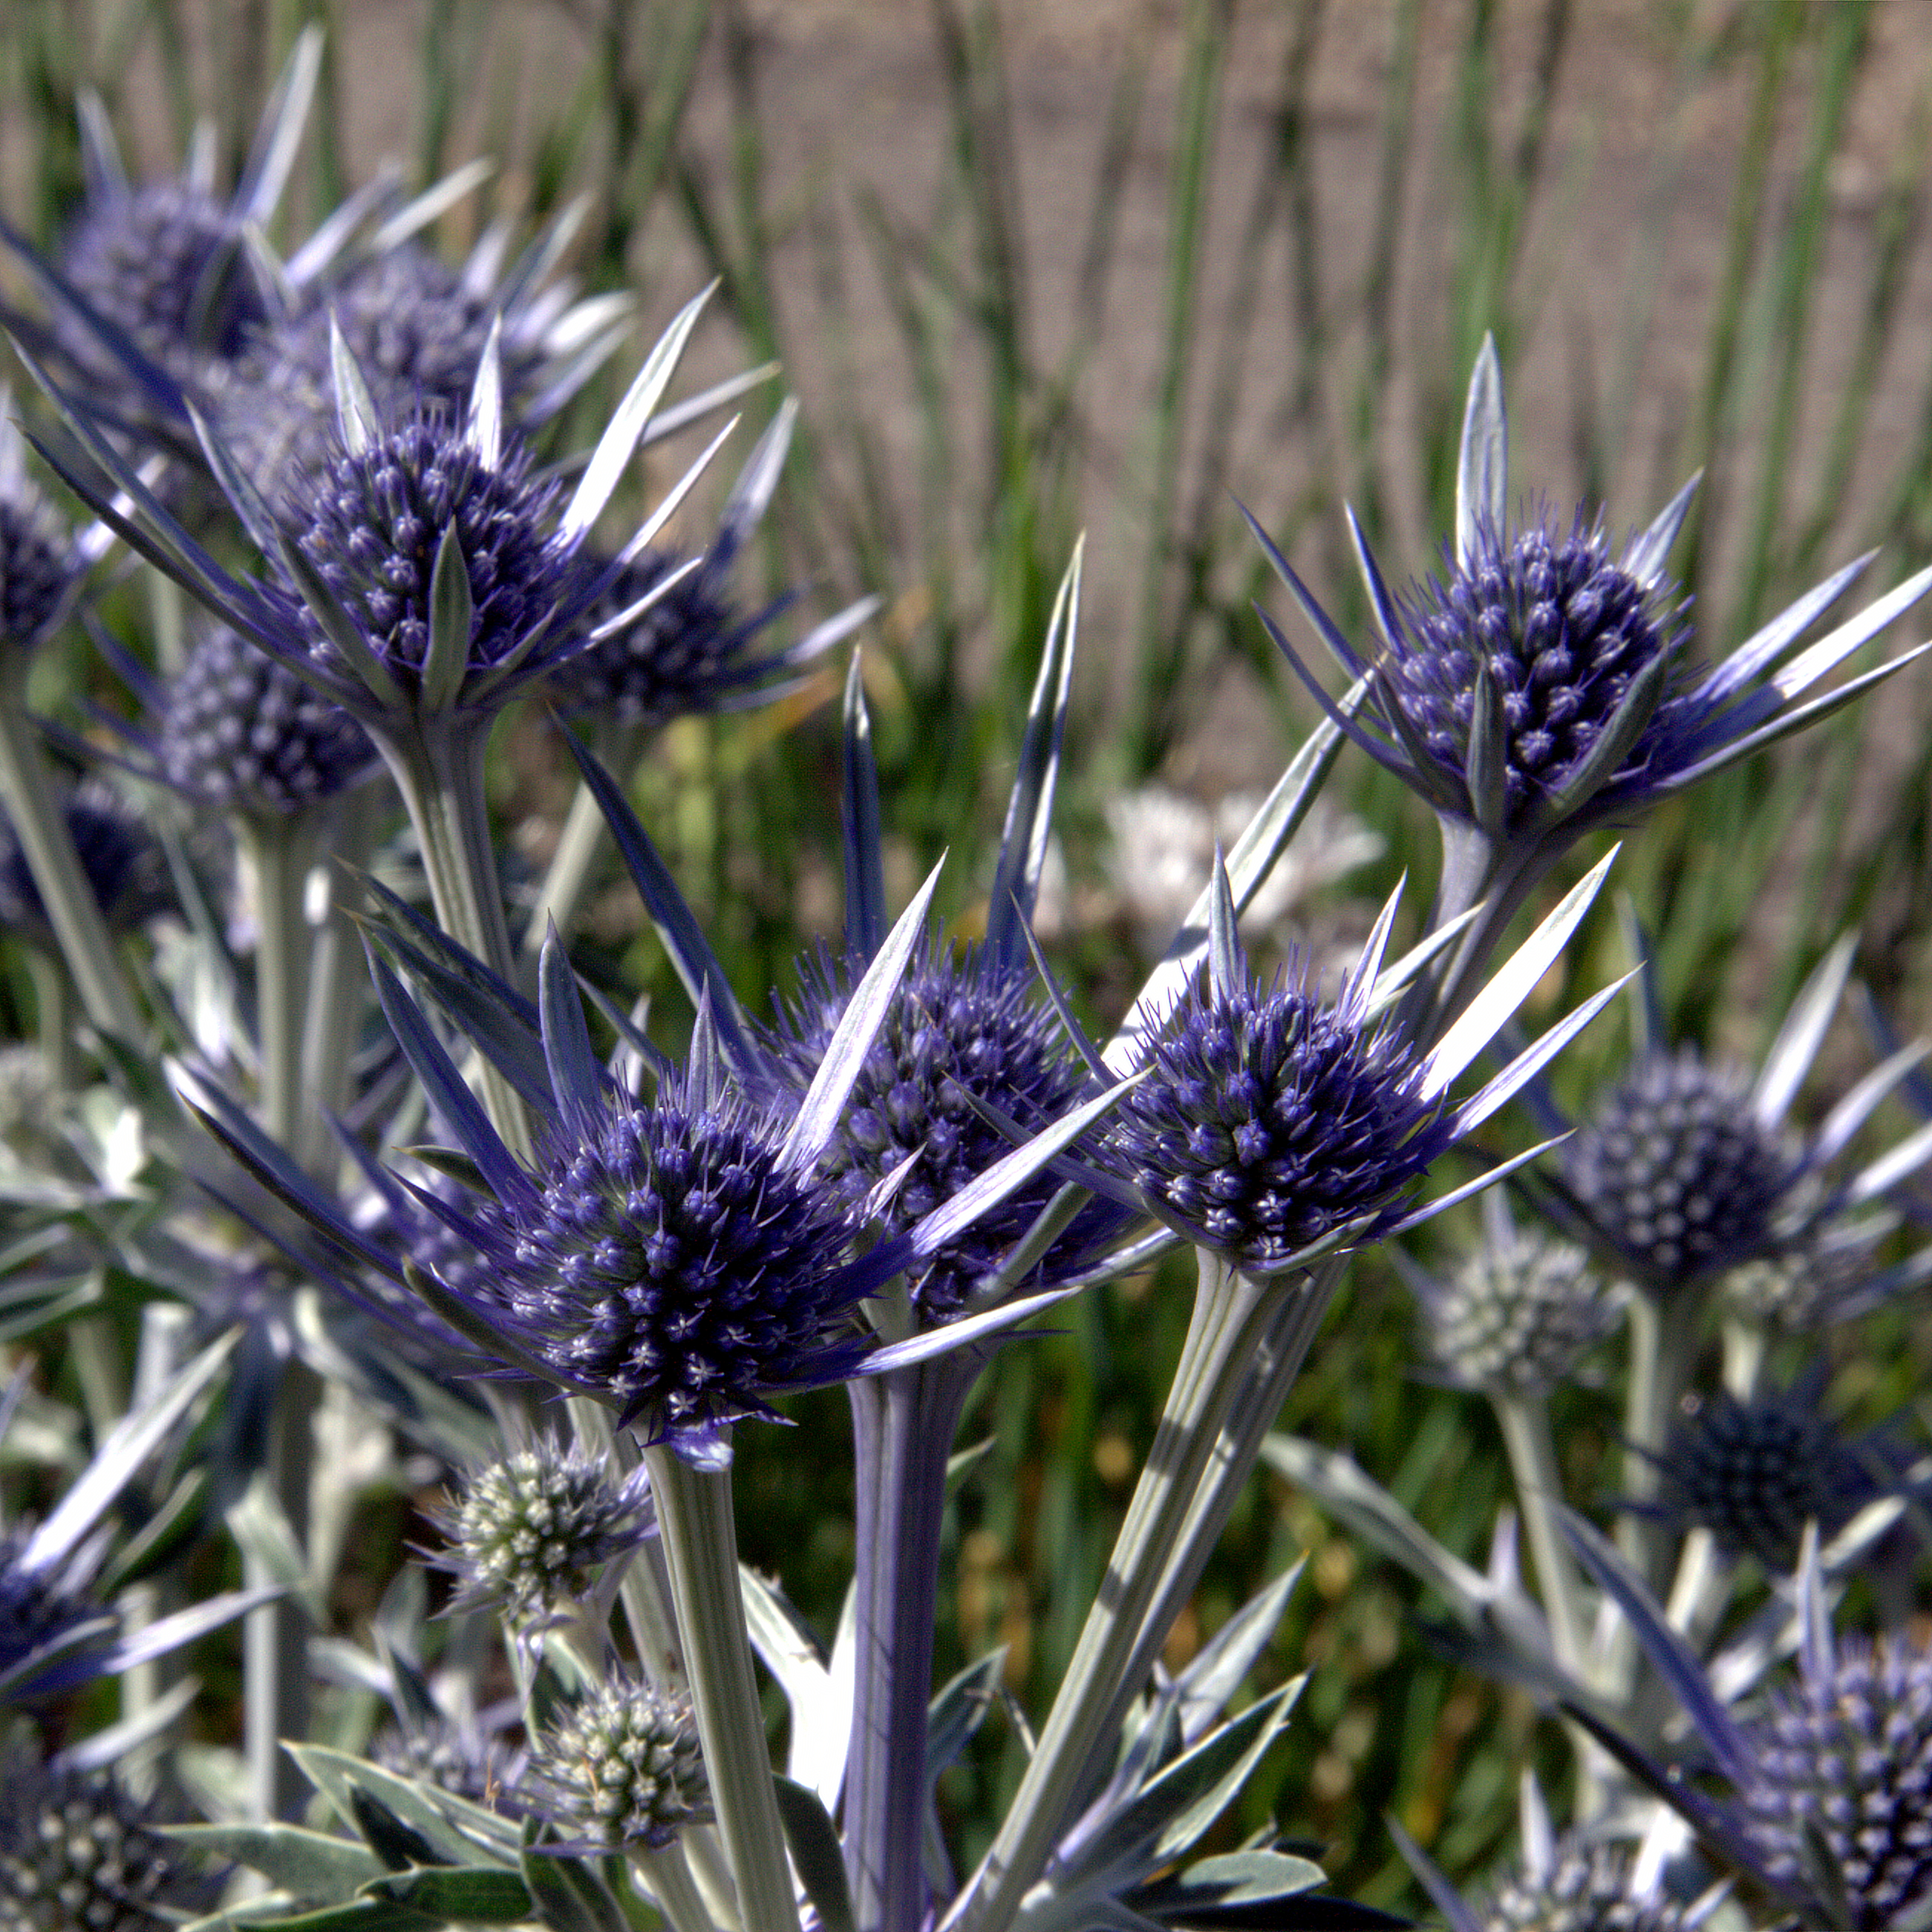 https://upload.wikimedia.org/wikipedia/commons/6/66/IMG_7885-Eryngium_bourgatii.jpg